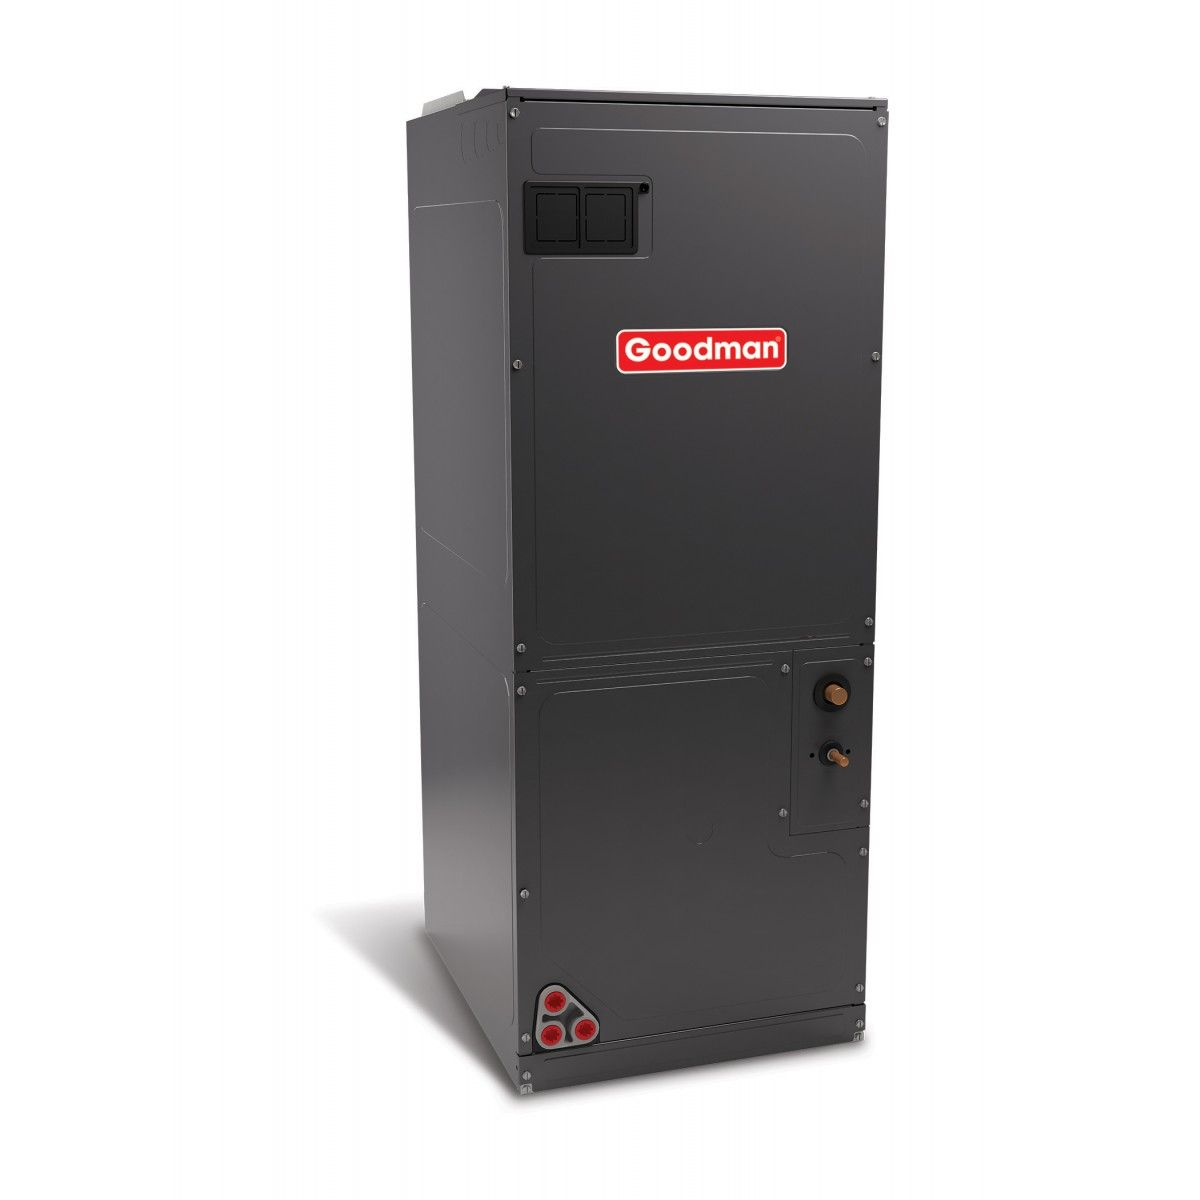 Goodman Ton Seer Heat Pump System One Time Special